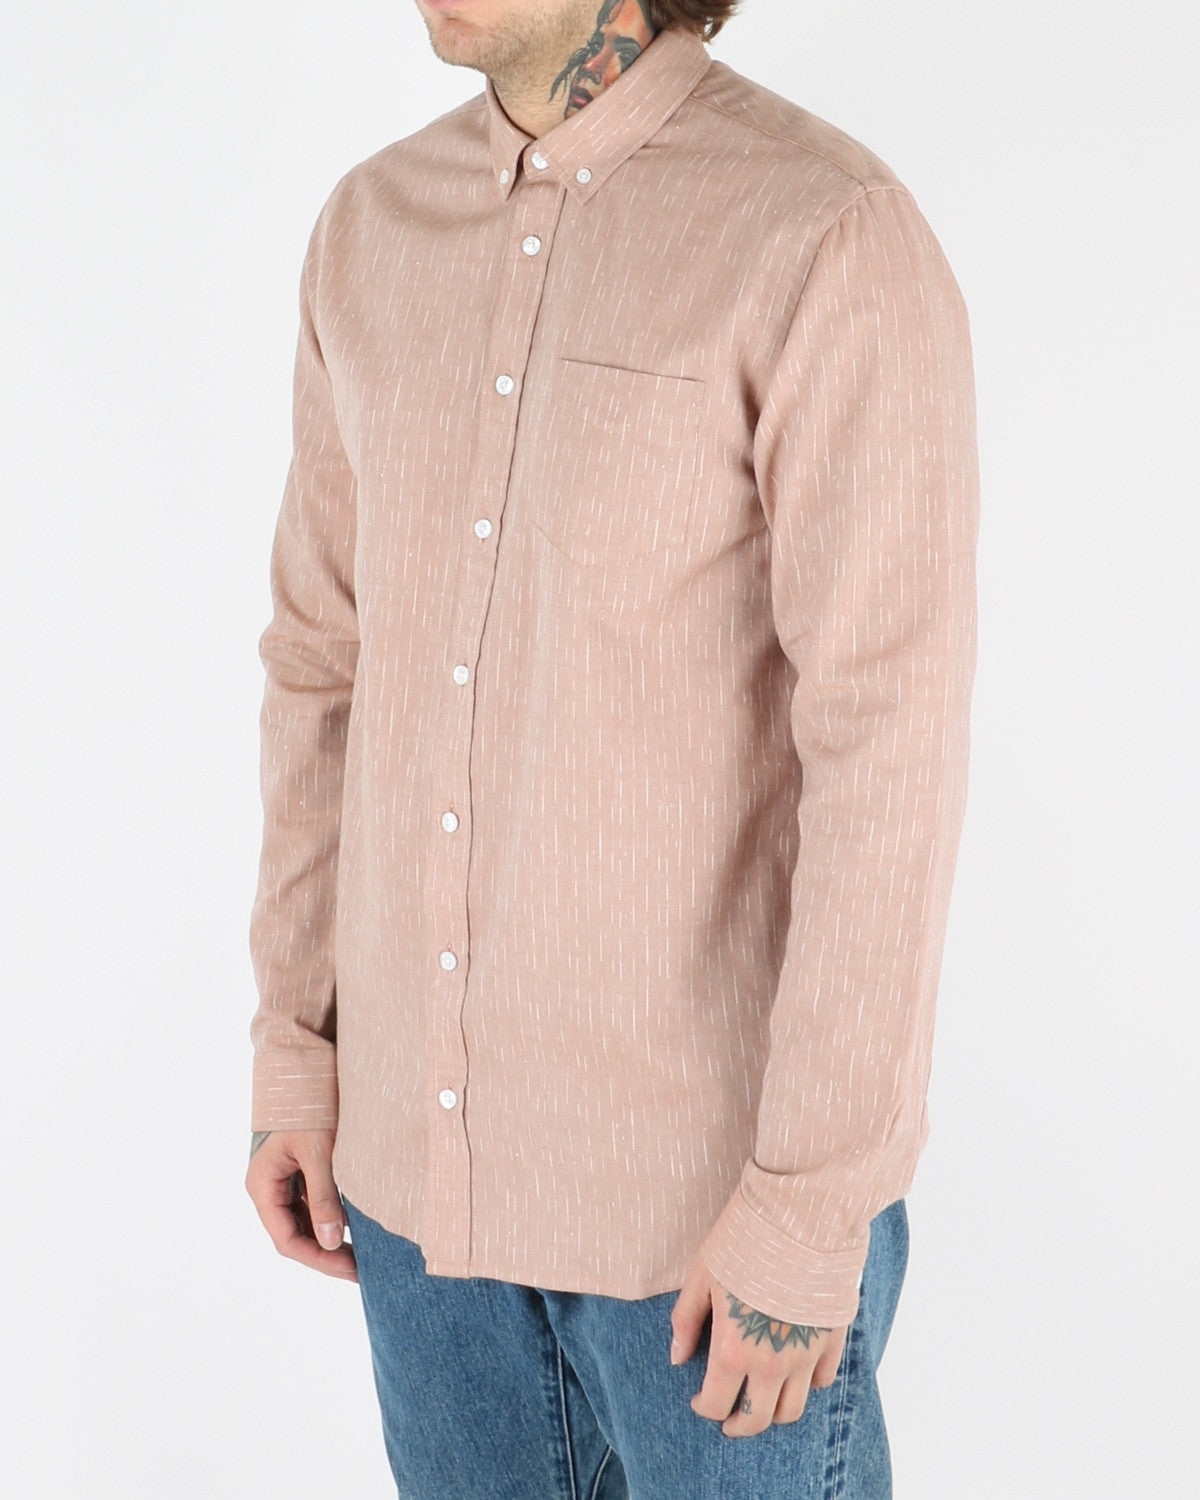 libertine libertine_hunter shirt_ochre_view_2_3